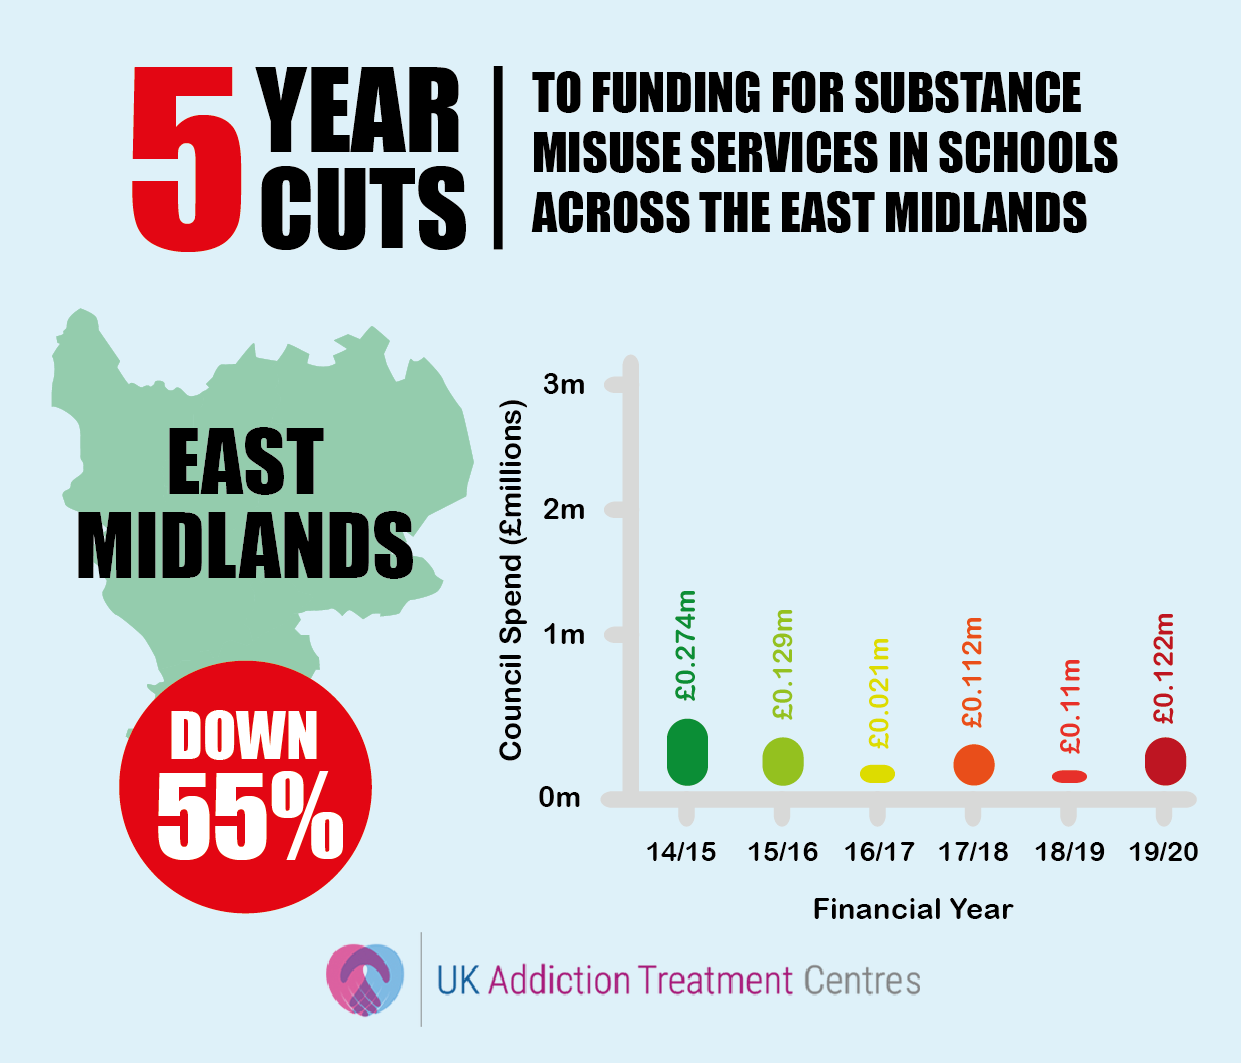 east midlands addiction cuts infographic